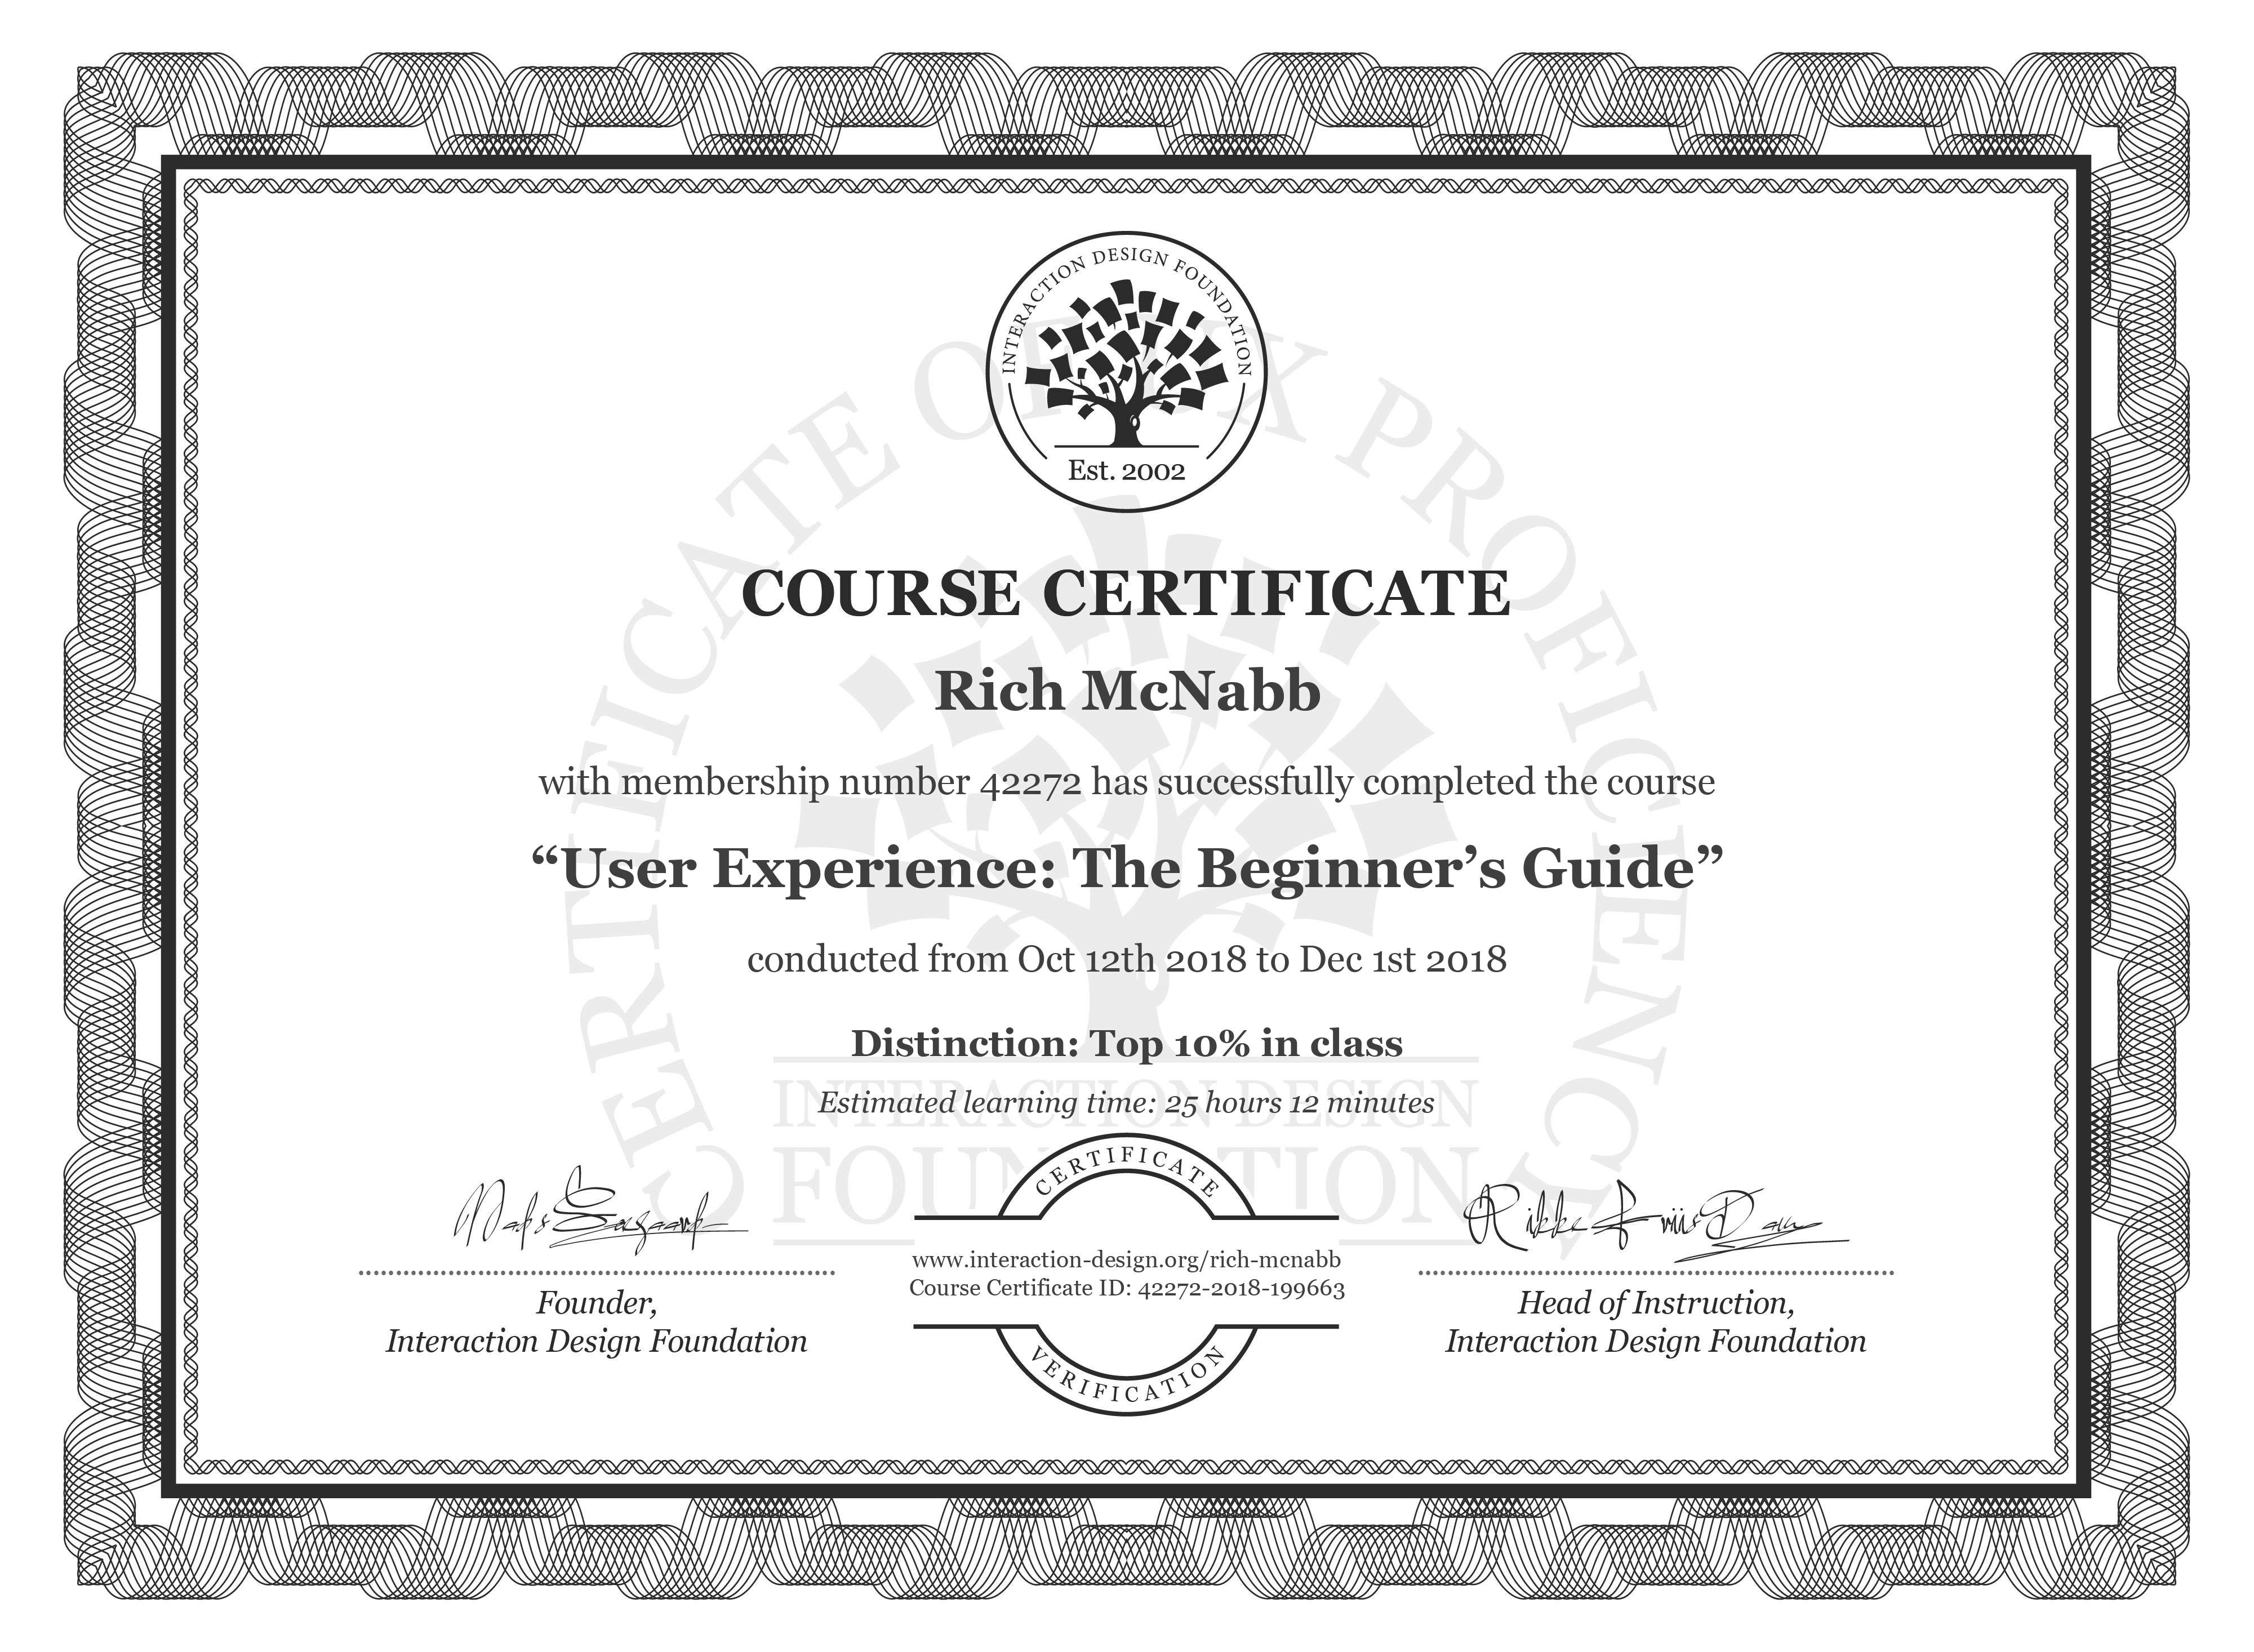 Rich McNabb: Course Certificate - Become a UX Designer from Scratch